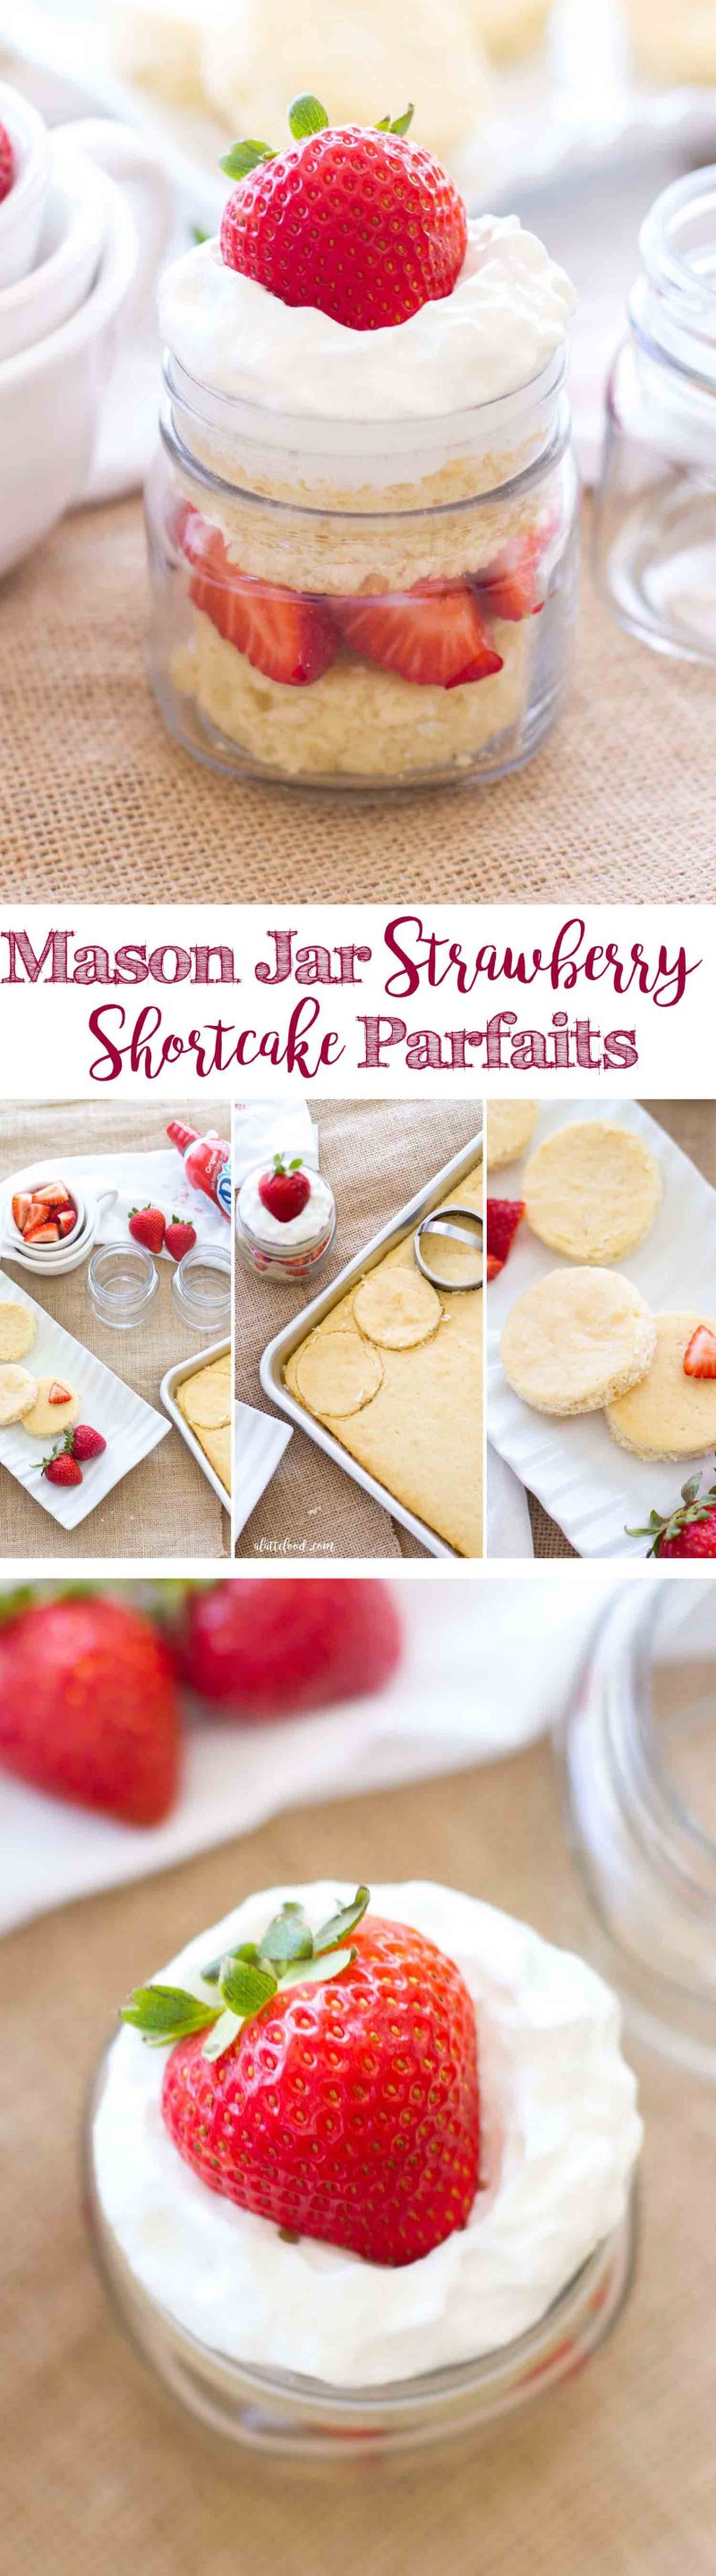 These Homemade Mason Jar Strawberry Shortcake Parfaits Are Cute, Portable,